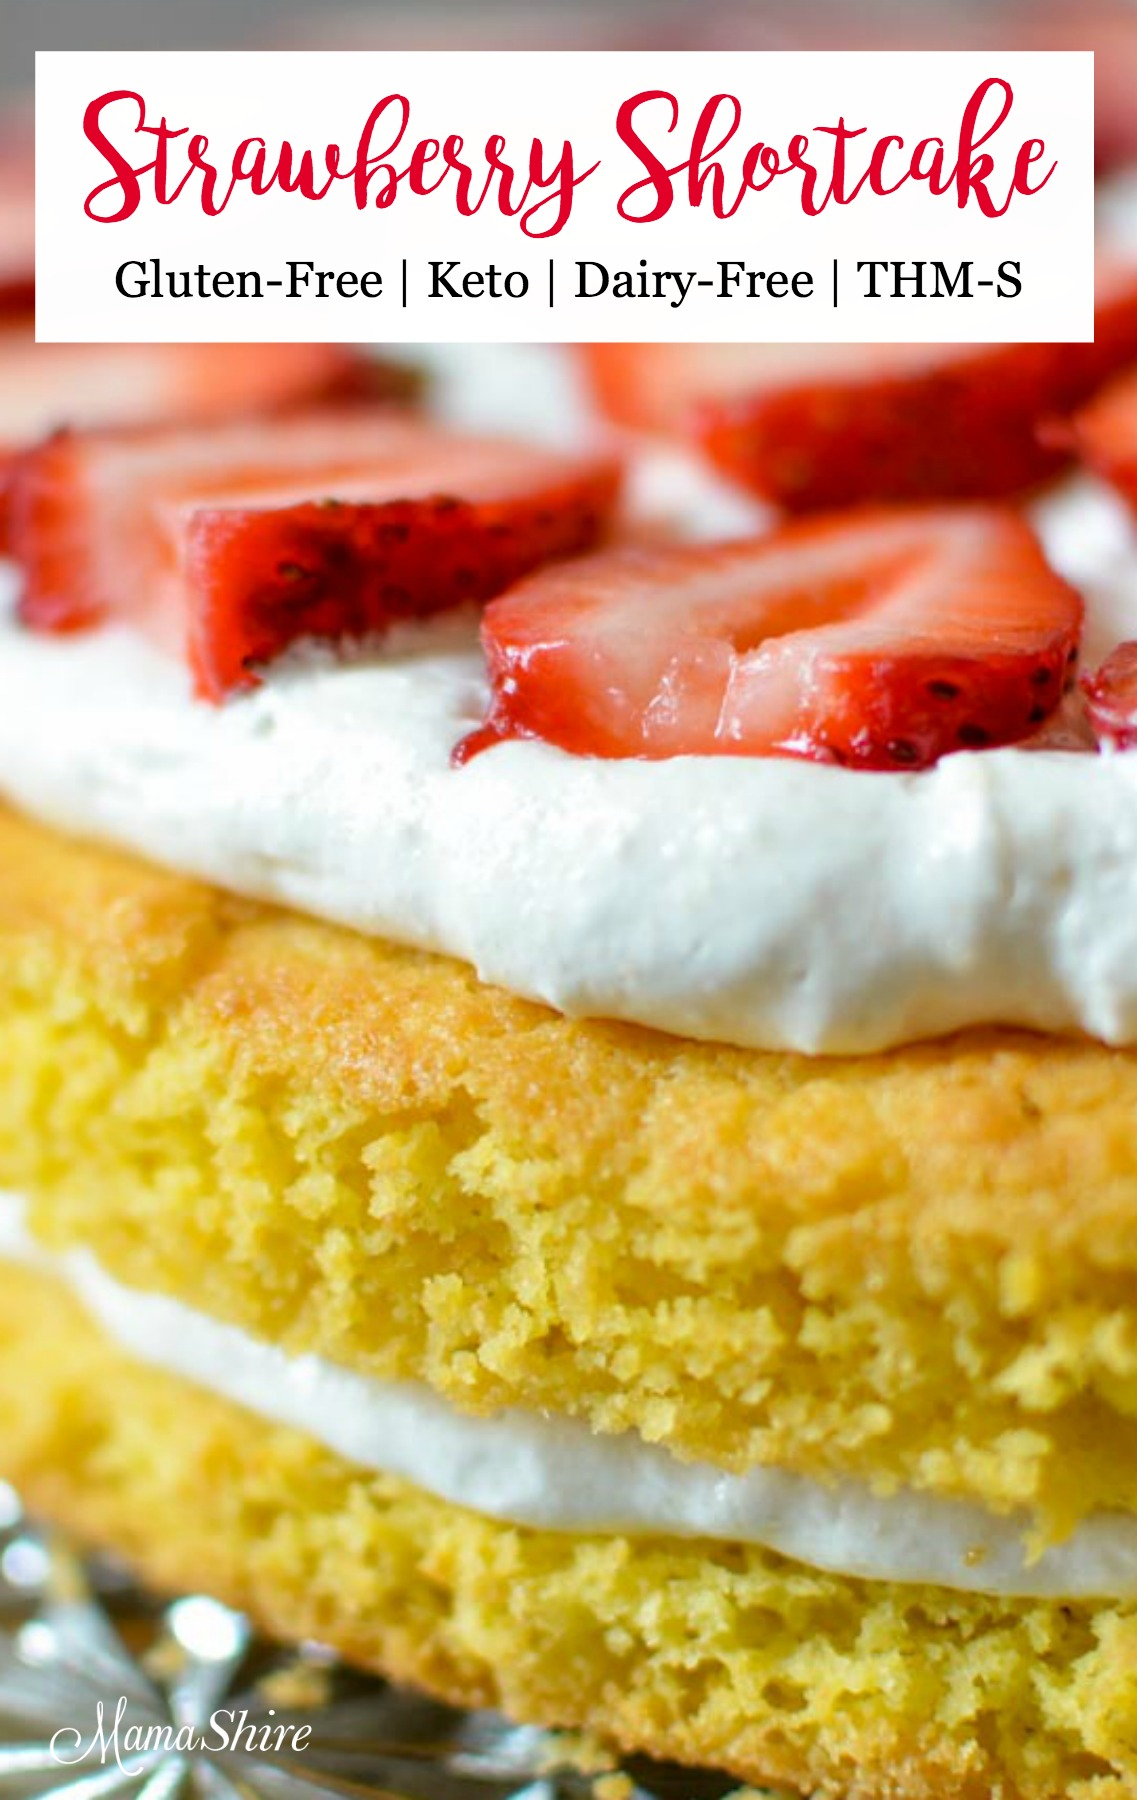 Delicious Gluten-Free Strawberry Shortcake - Dairy-free, Low-carb, Keto, THM-S